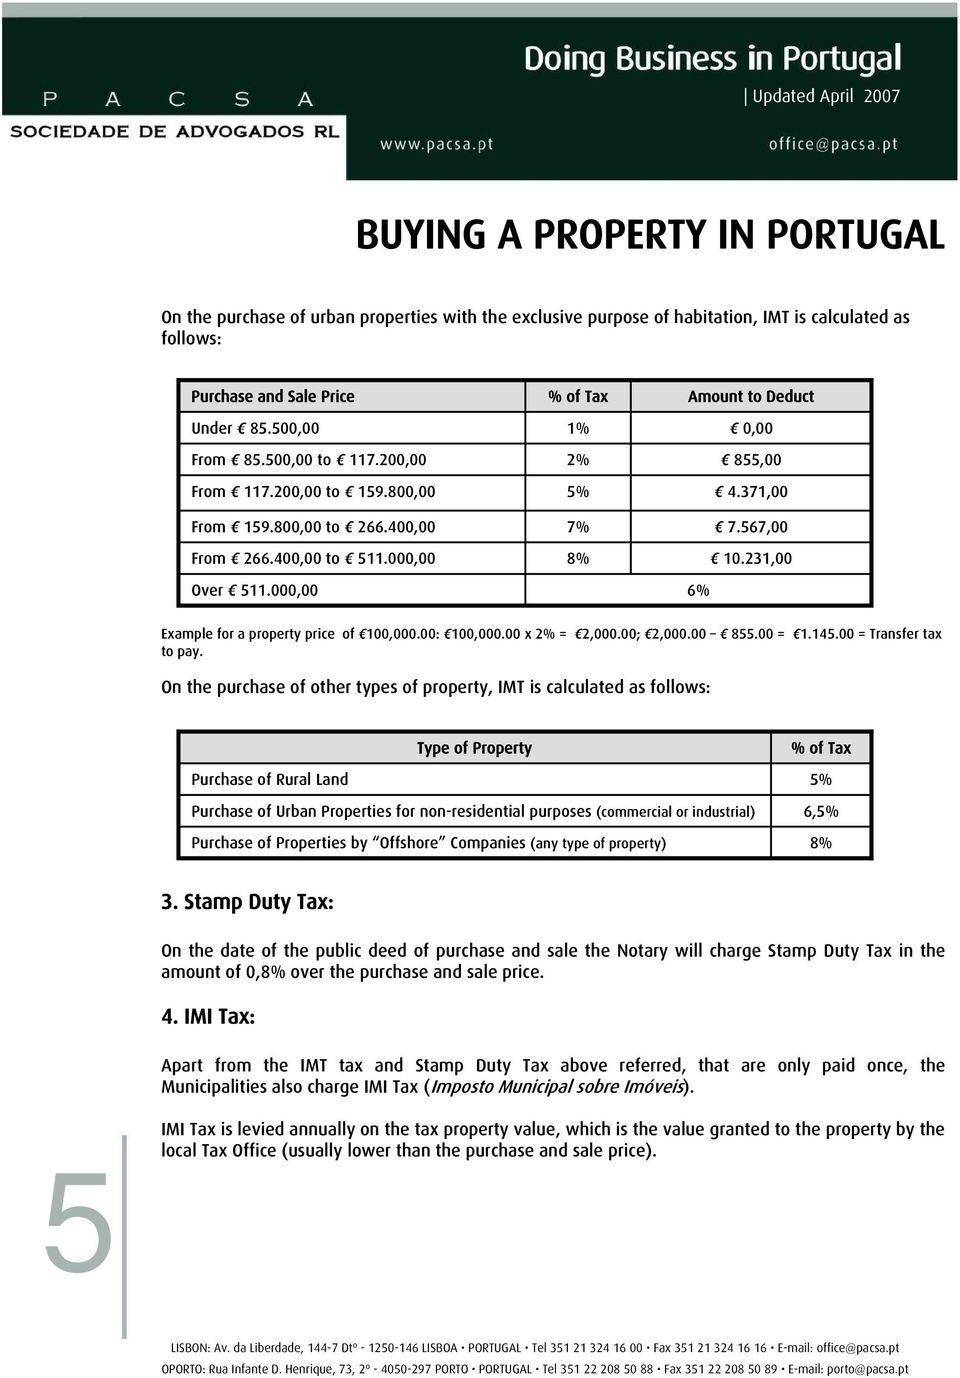 000,00 6% Example for a property price of 100,000.00: 100,000.00 x 2% = 2,000.00; 2,000.00 855.00 = 1.145.00 = Transfer tax to pay.